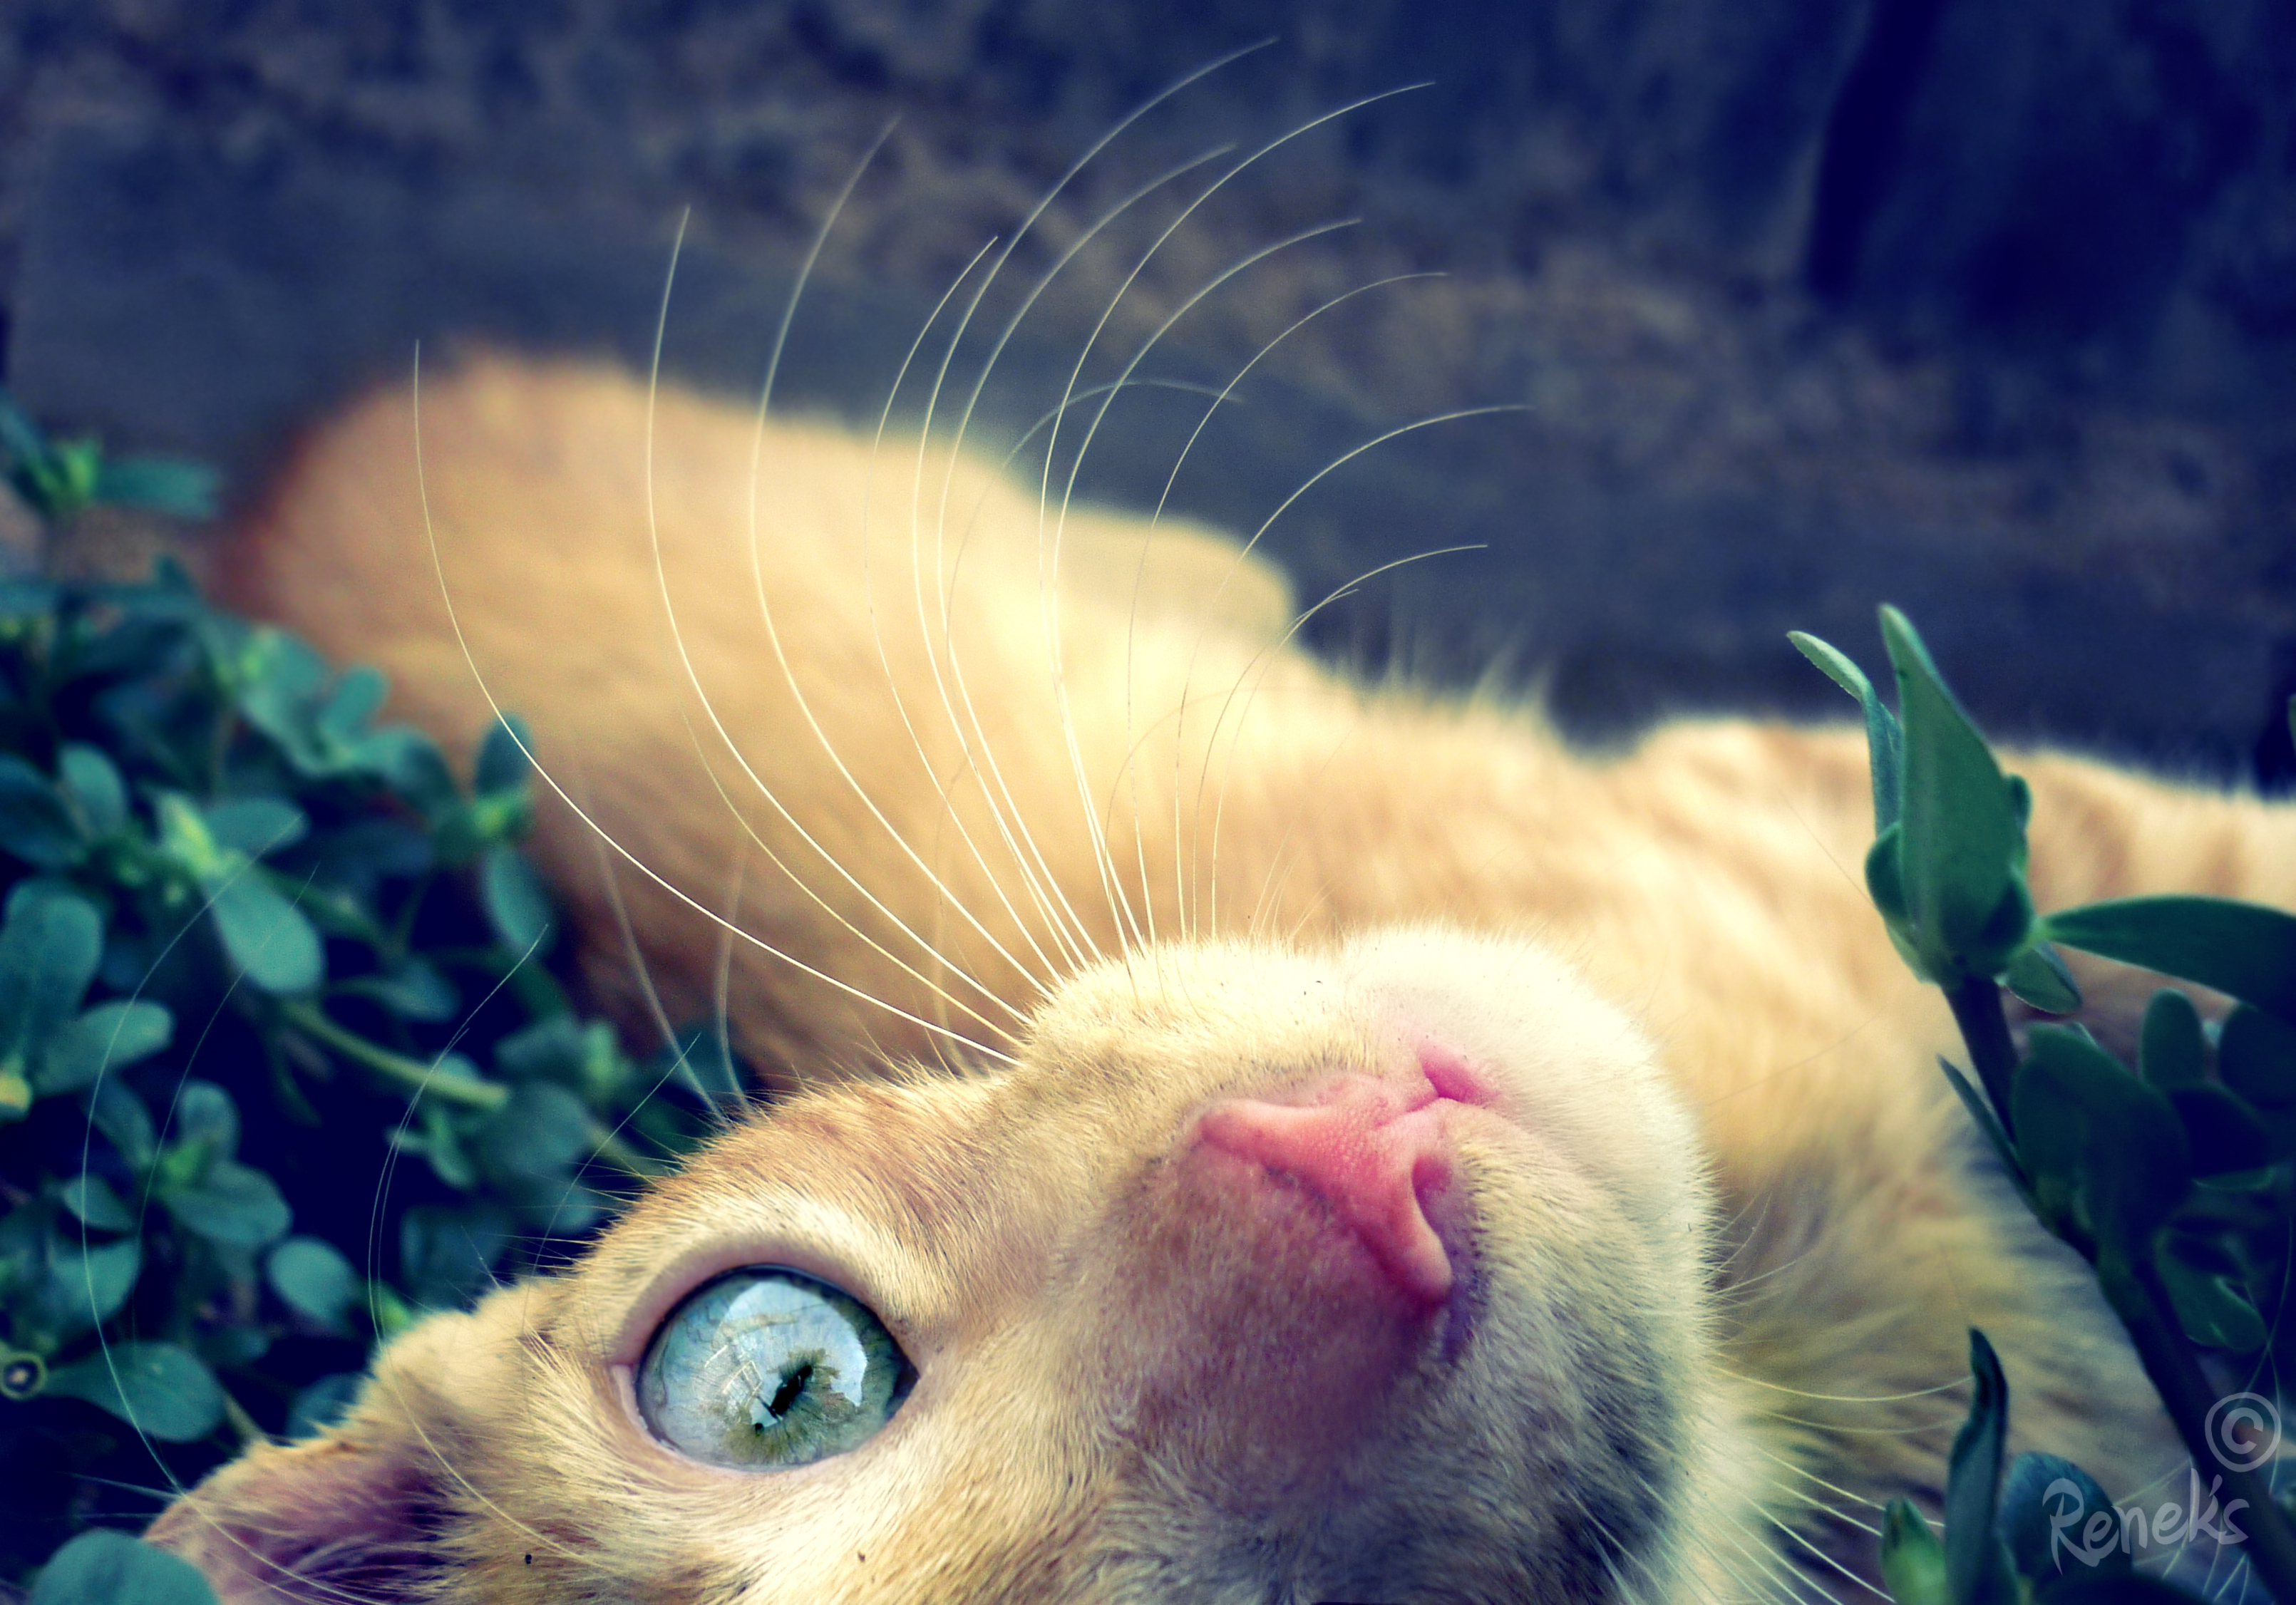 57126 download wallpaper Animals, Cat, Muzzle, Redhead, Eyes screensavers and pictures for free